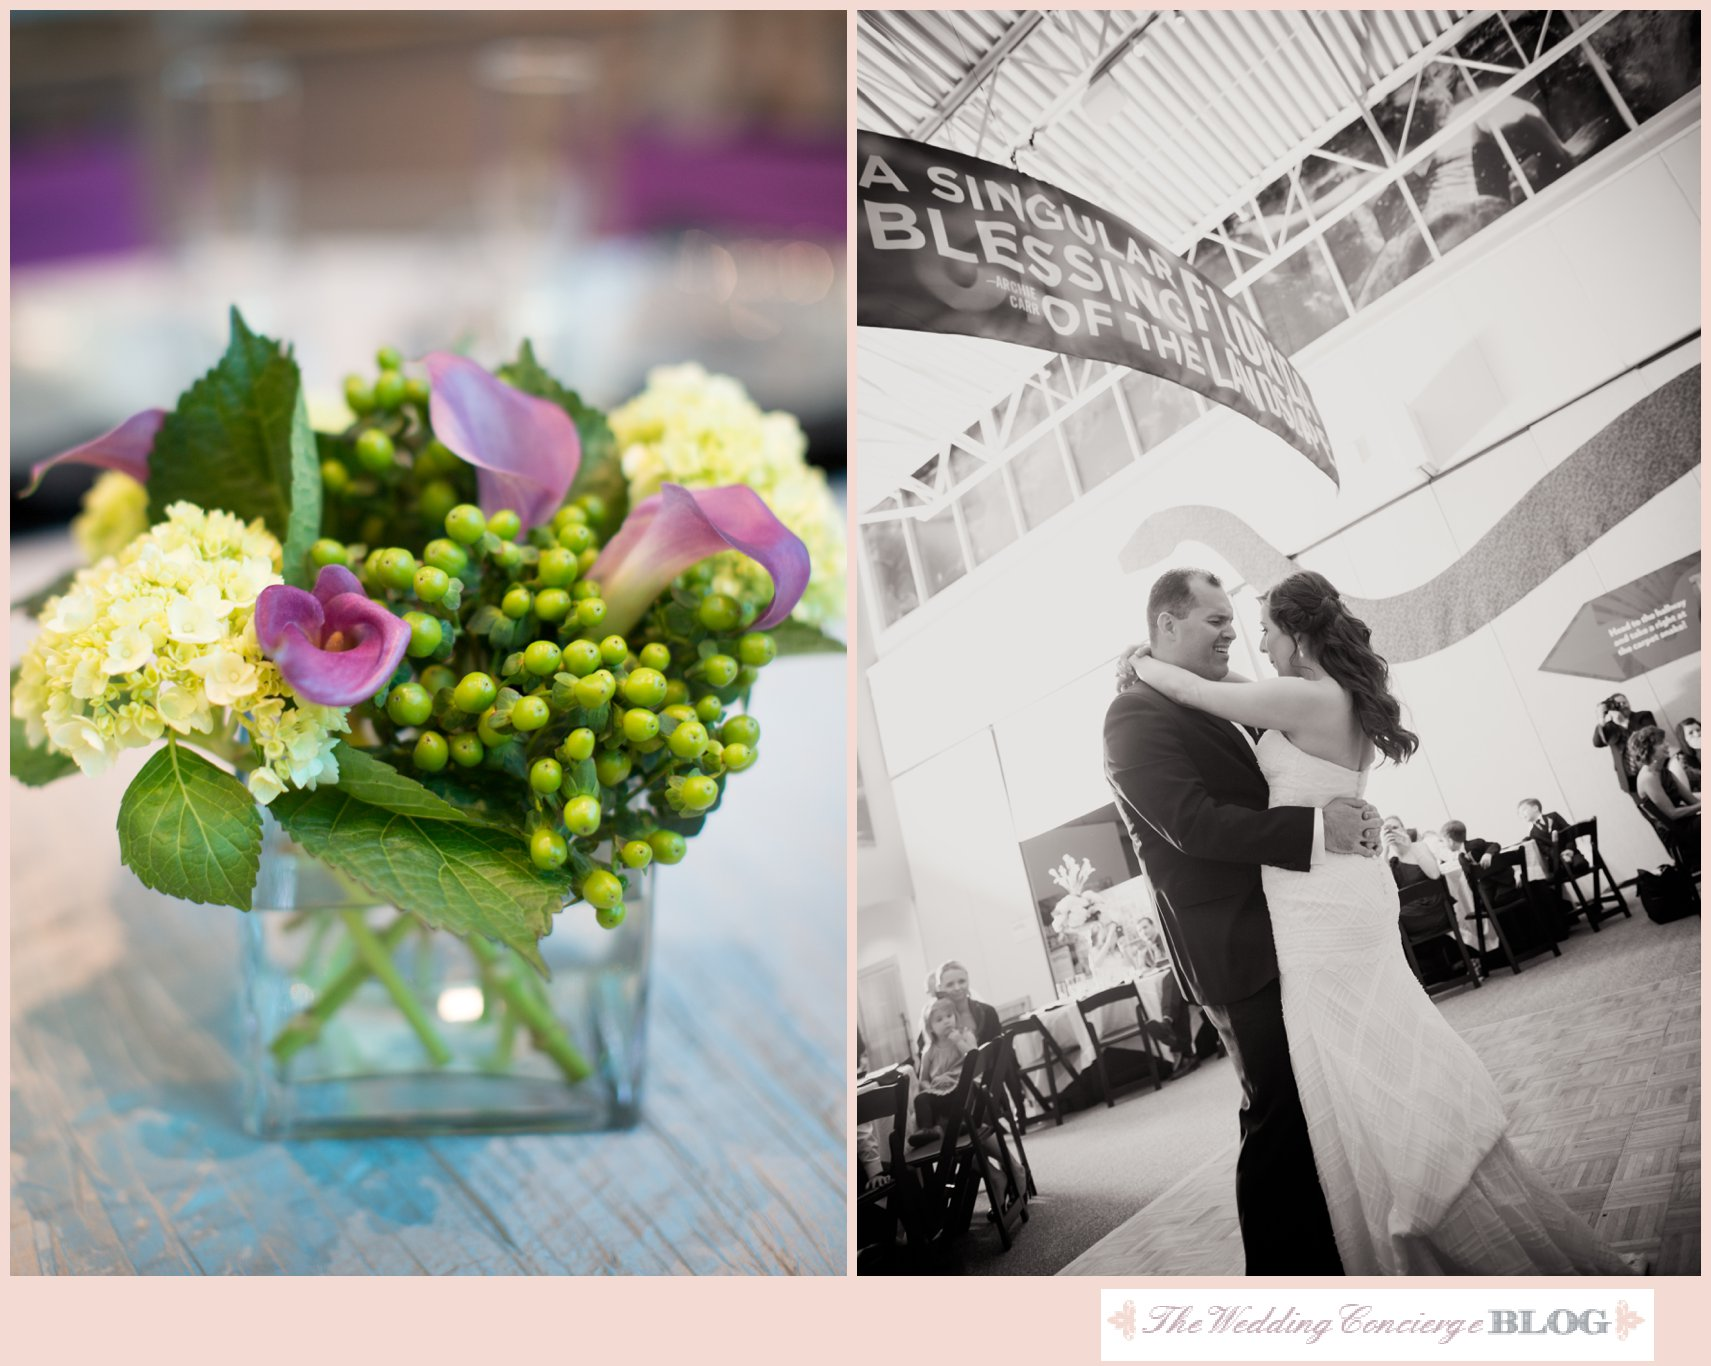 Real wedding featured on wedding concierge blog blog for Accent styling salon gainesville